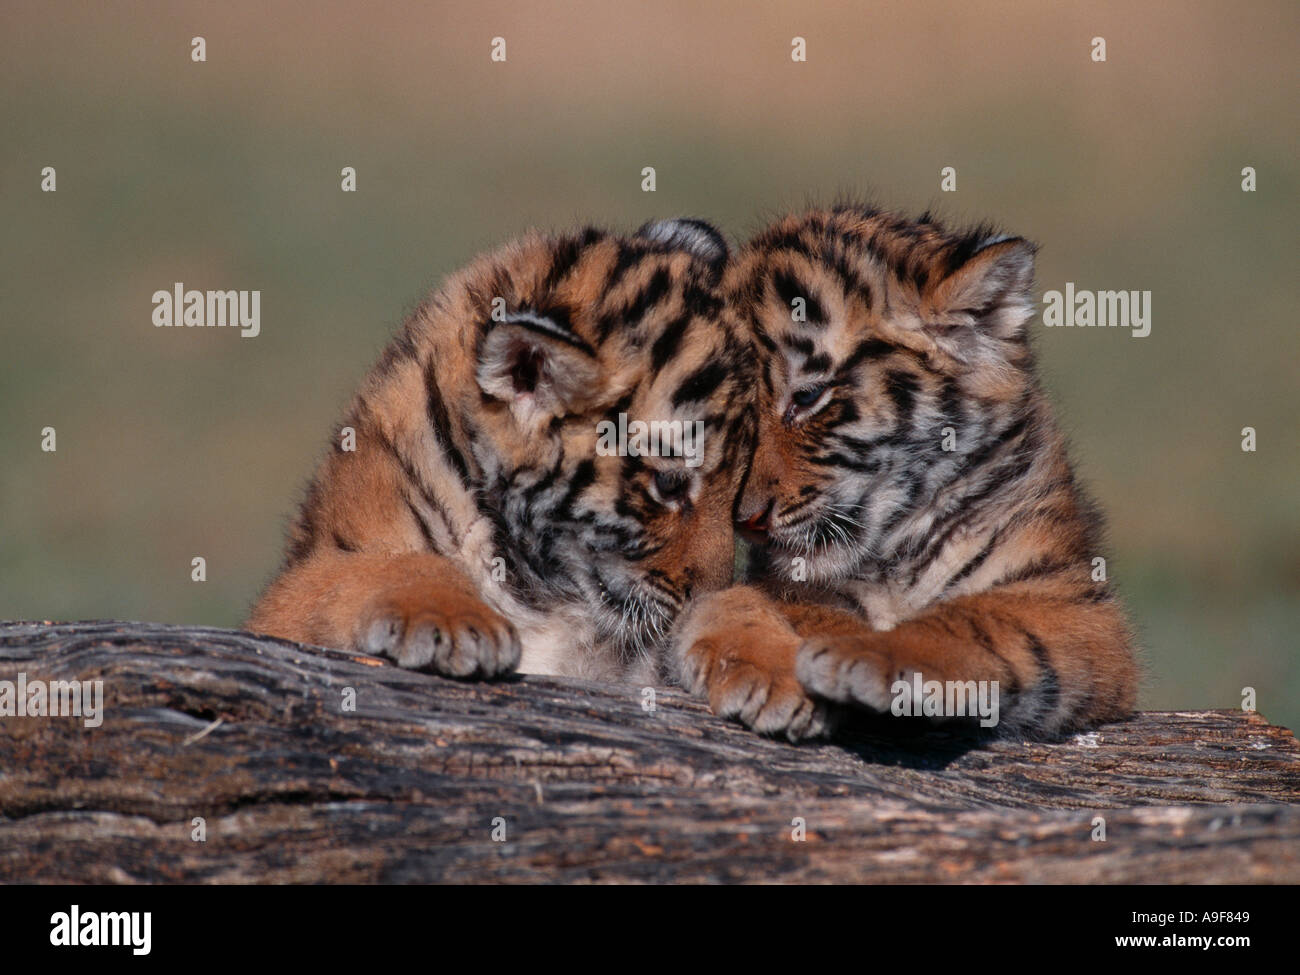 Two tiger cubs playing on log in captivity - Stock Image